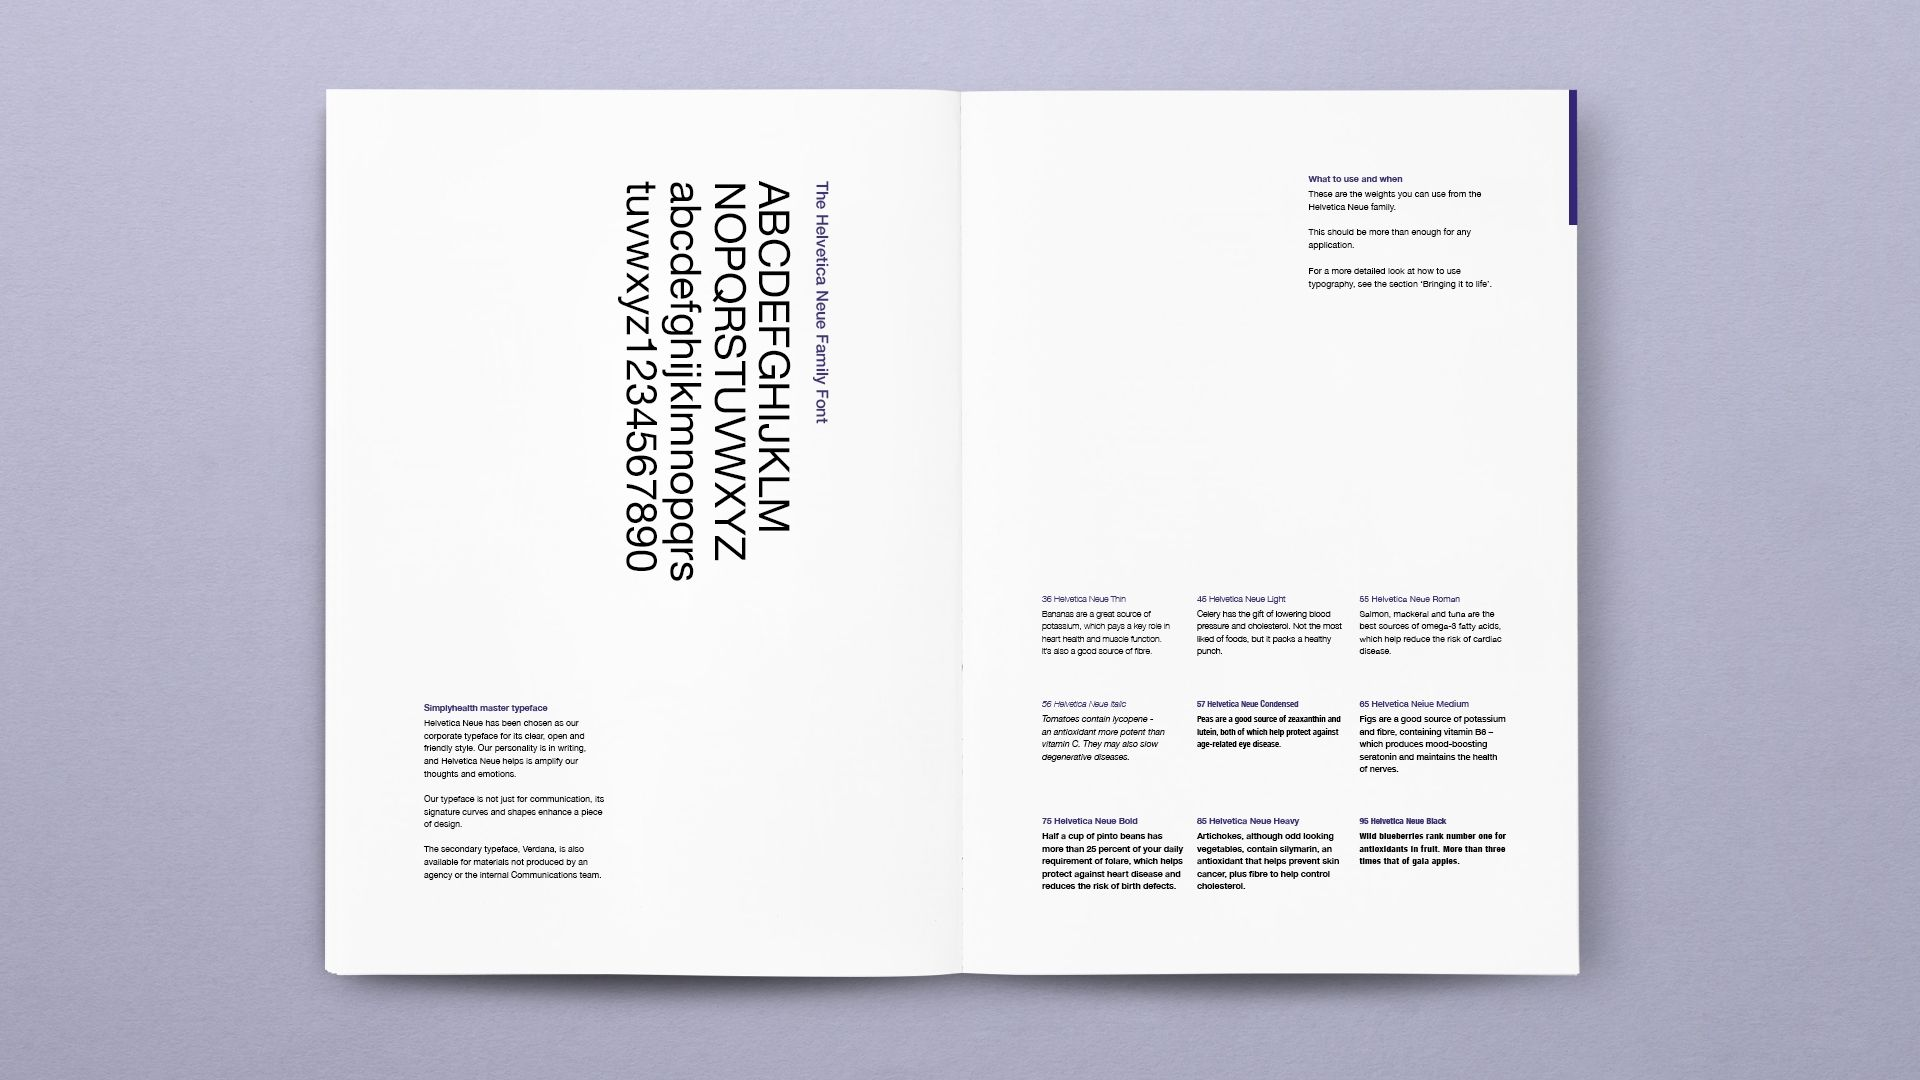 Simplyhealth Brandguides Book Typeface